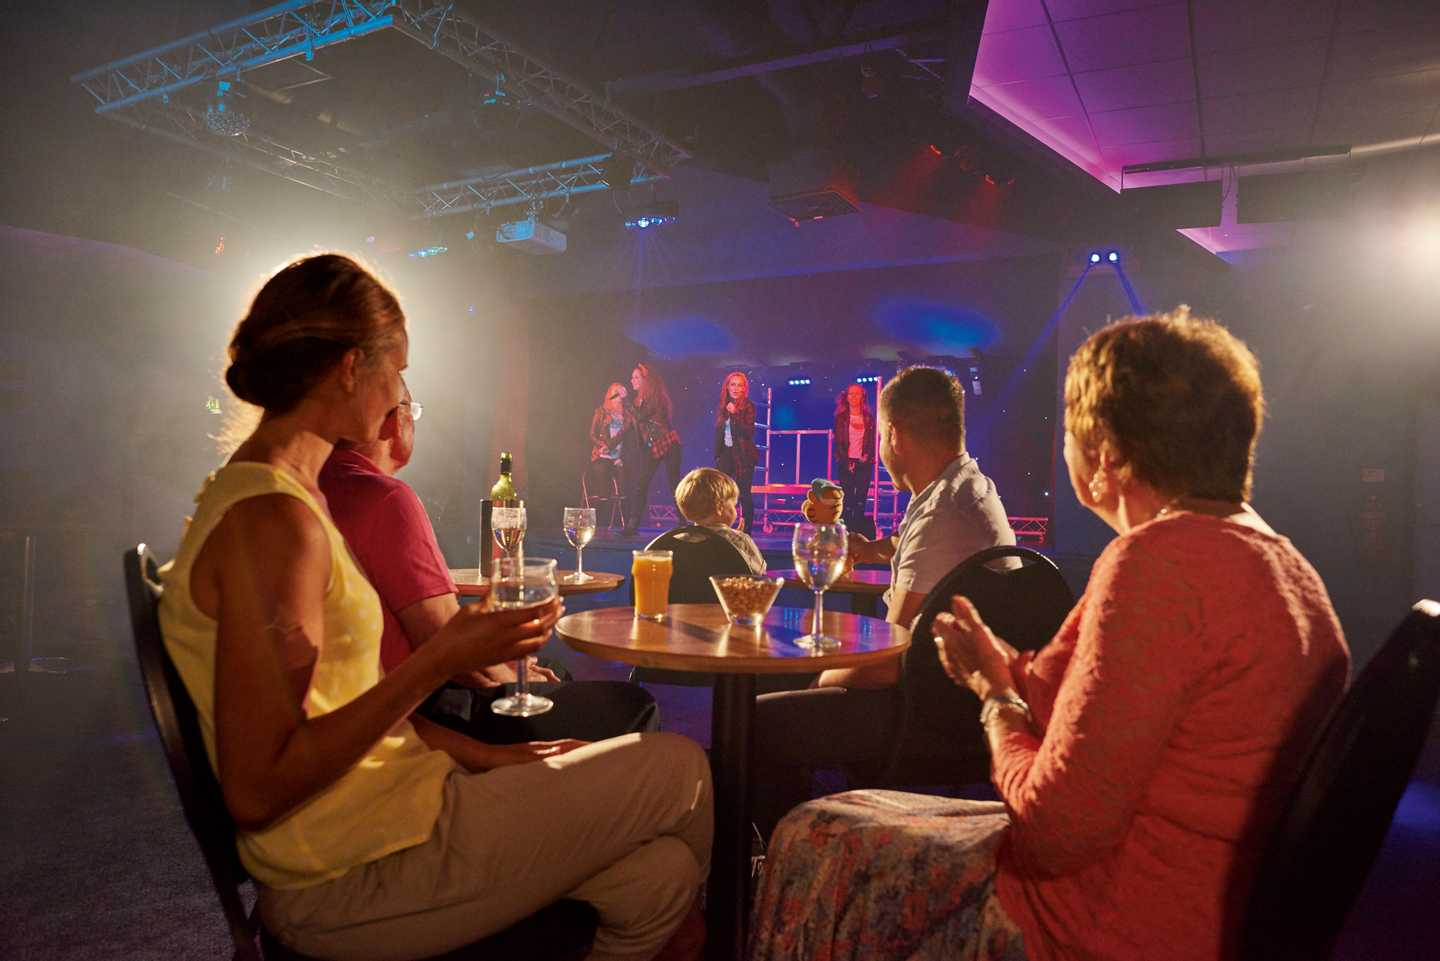 Guests enjoying the entertainment in the ShowBar